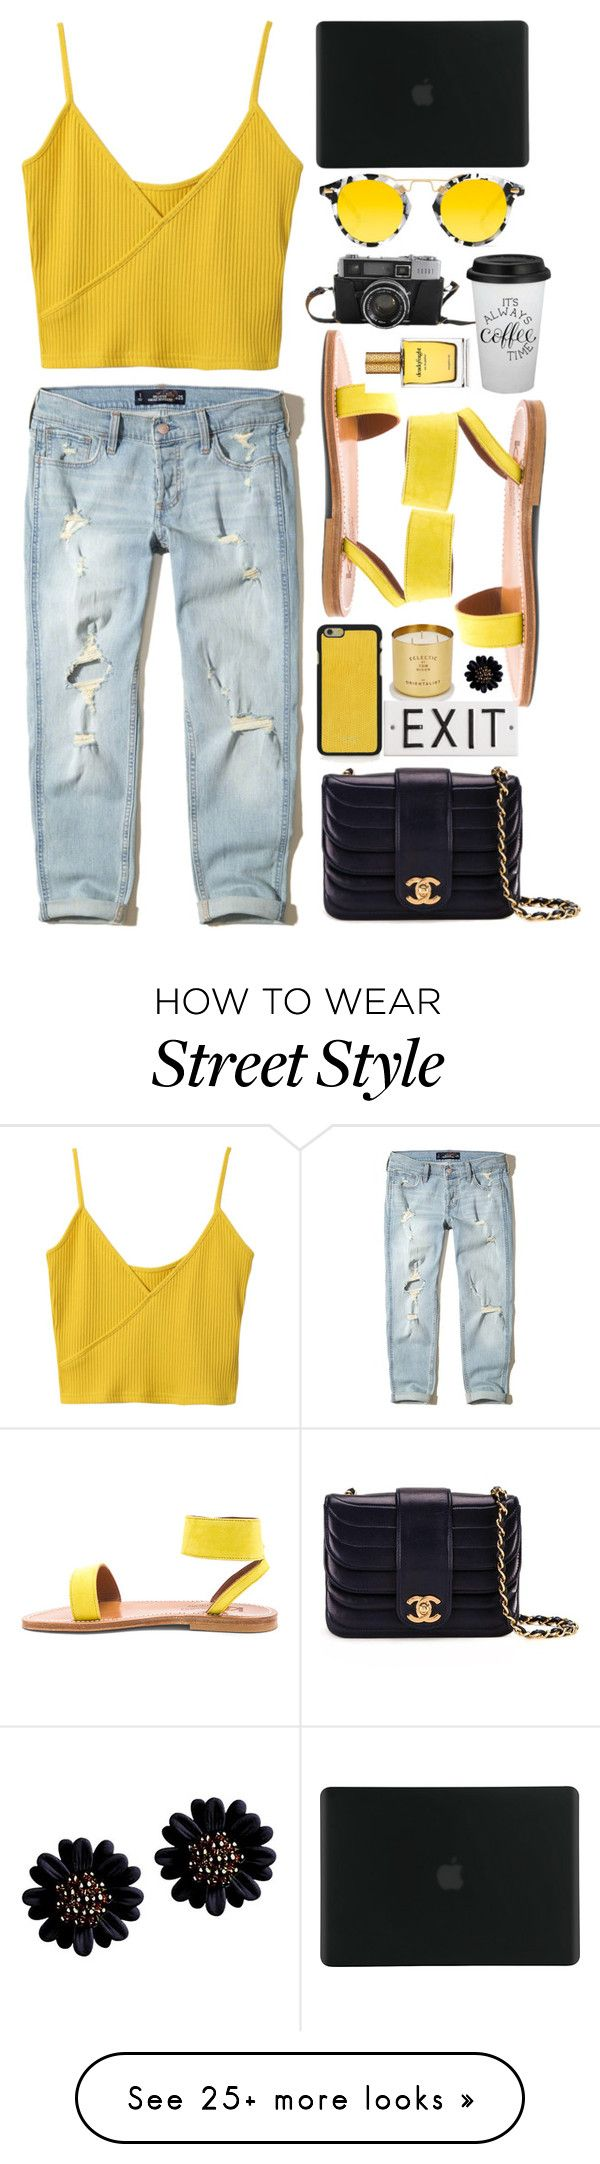 """""""Street style"""" by aashna-makkar on Polyvore featuring Tom Dixon, Hollister Co., K. Jacques, Chanel, Krewe, Tucano, Vianel and Strangelove NYC"""